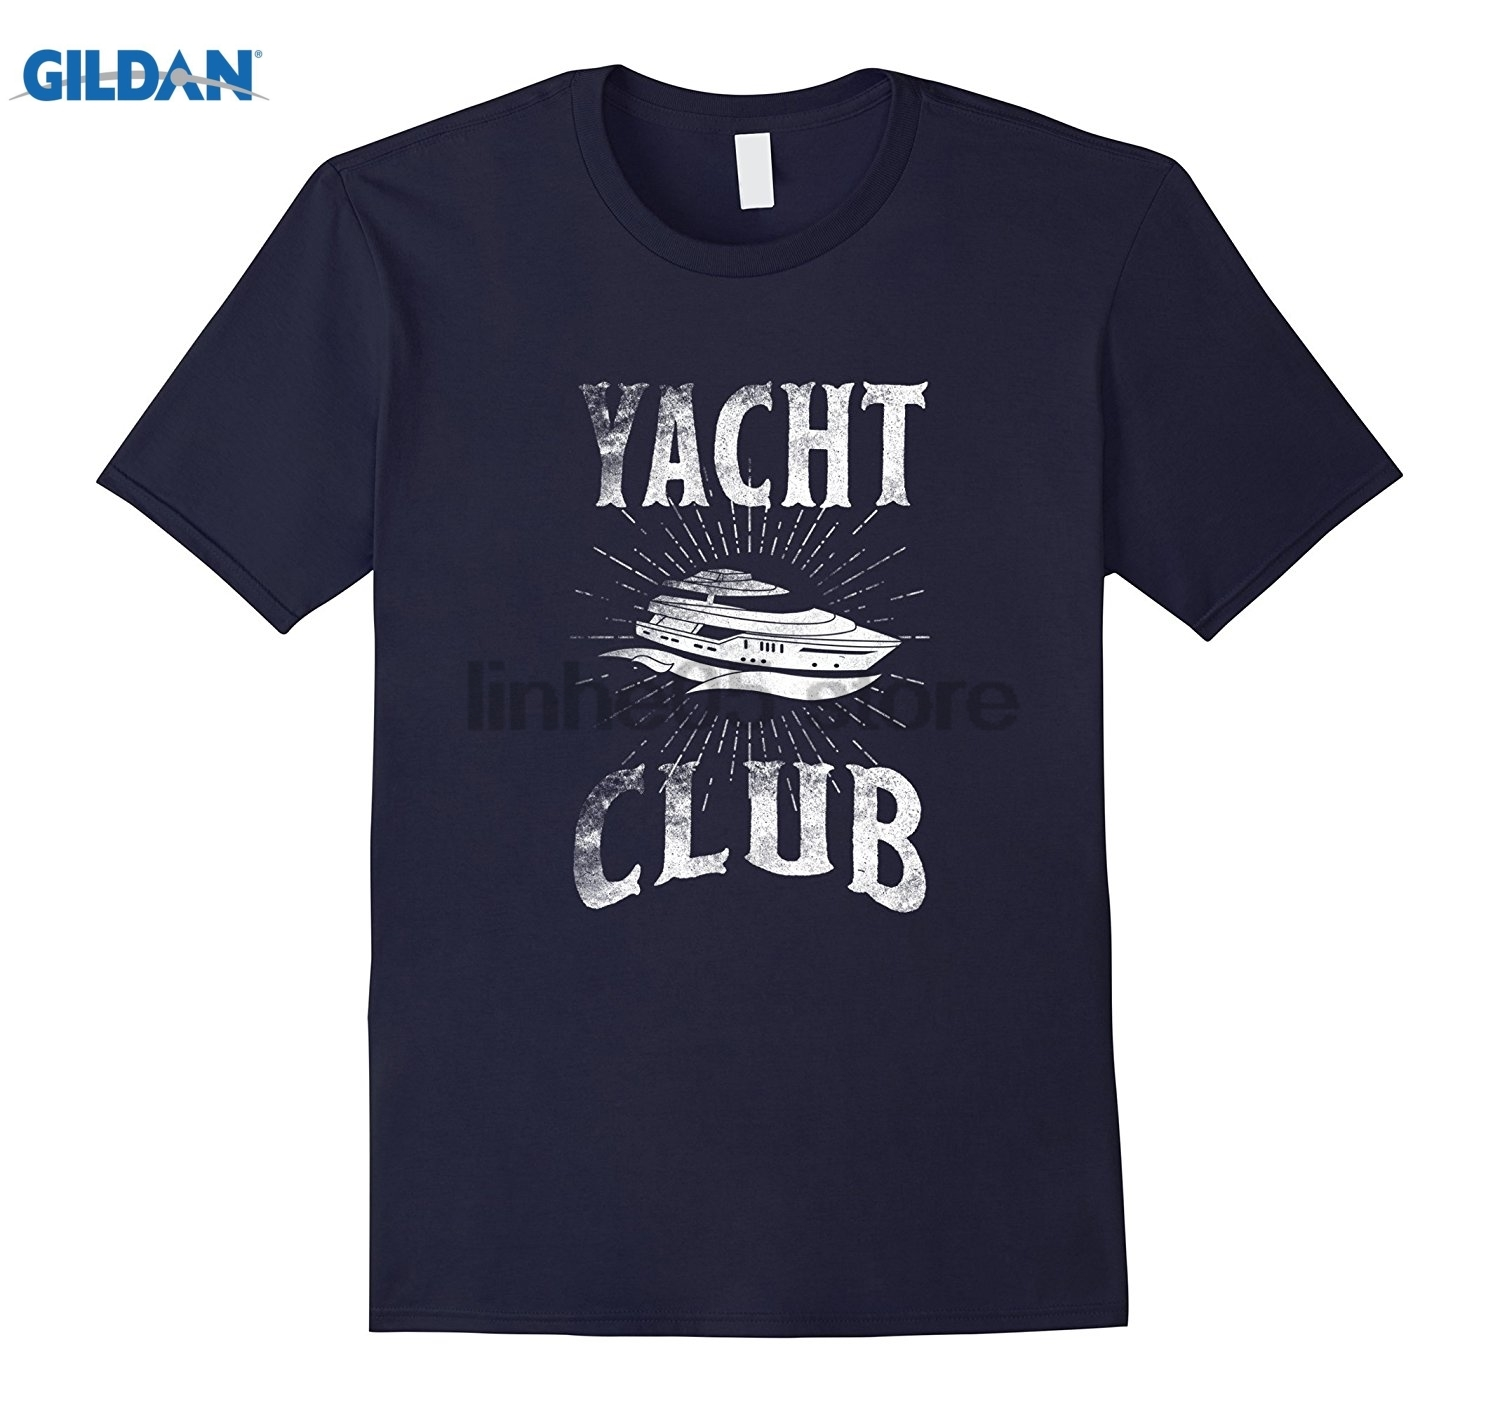 GILDAN Yacht Club Shirt Love Ship Boat Gifts USA Familiy Cruise Tee Womens T-shirt ...